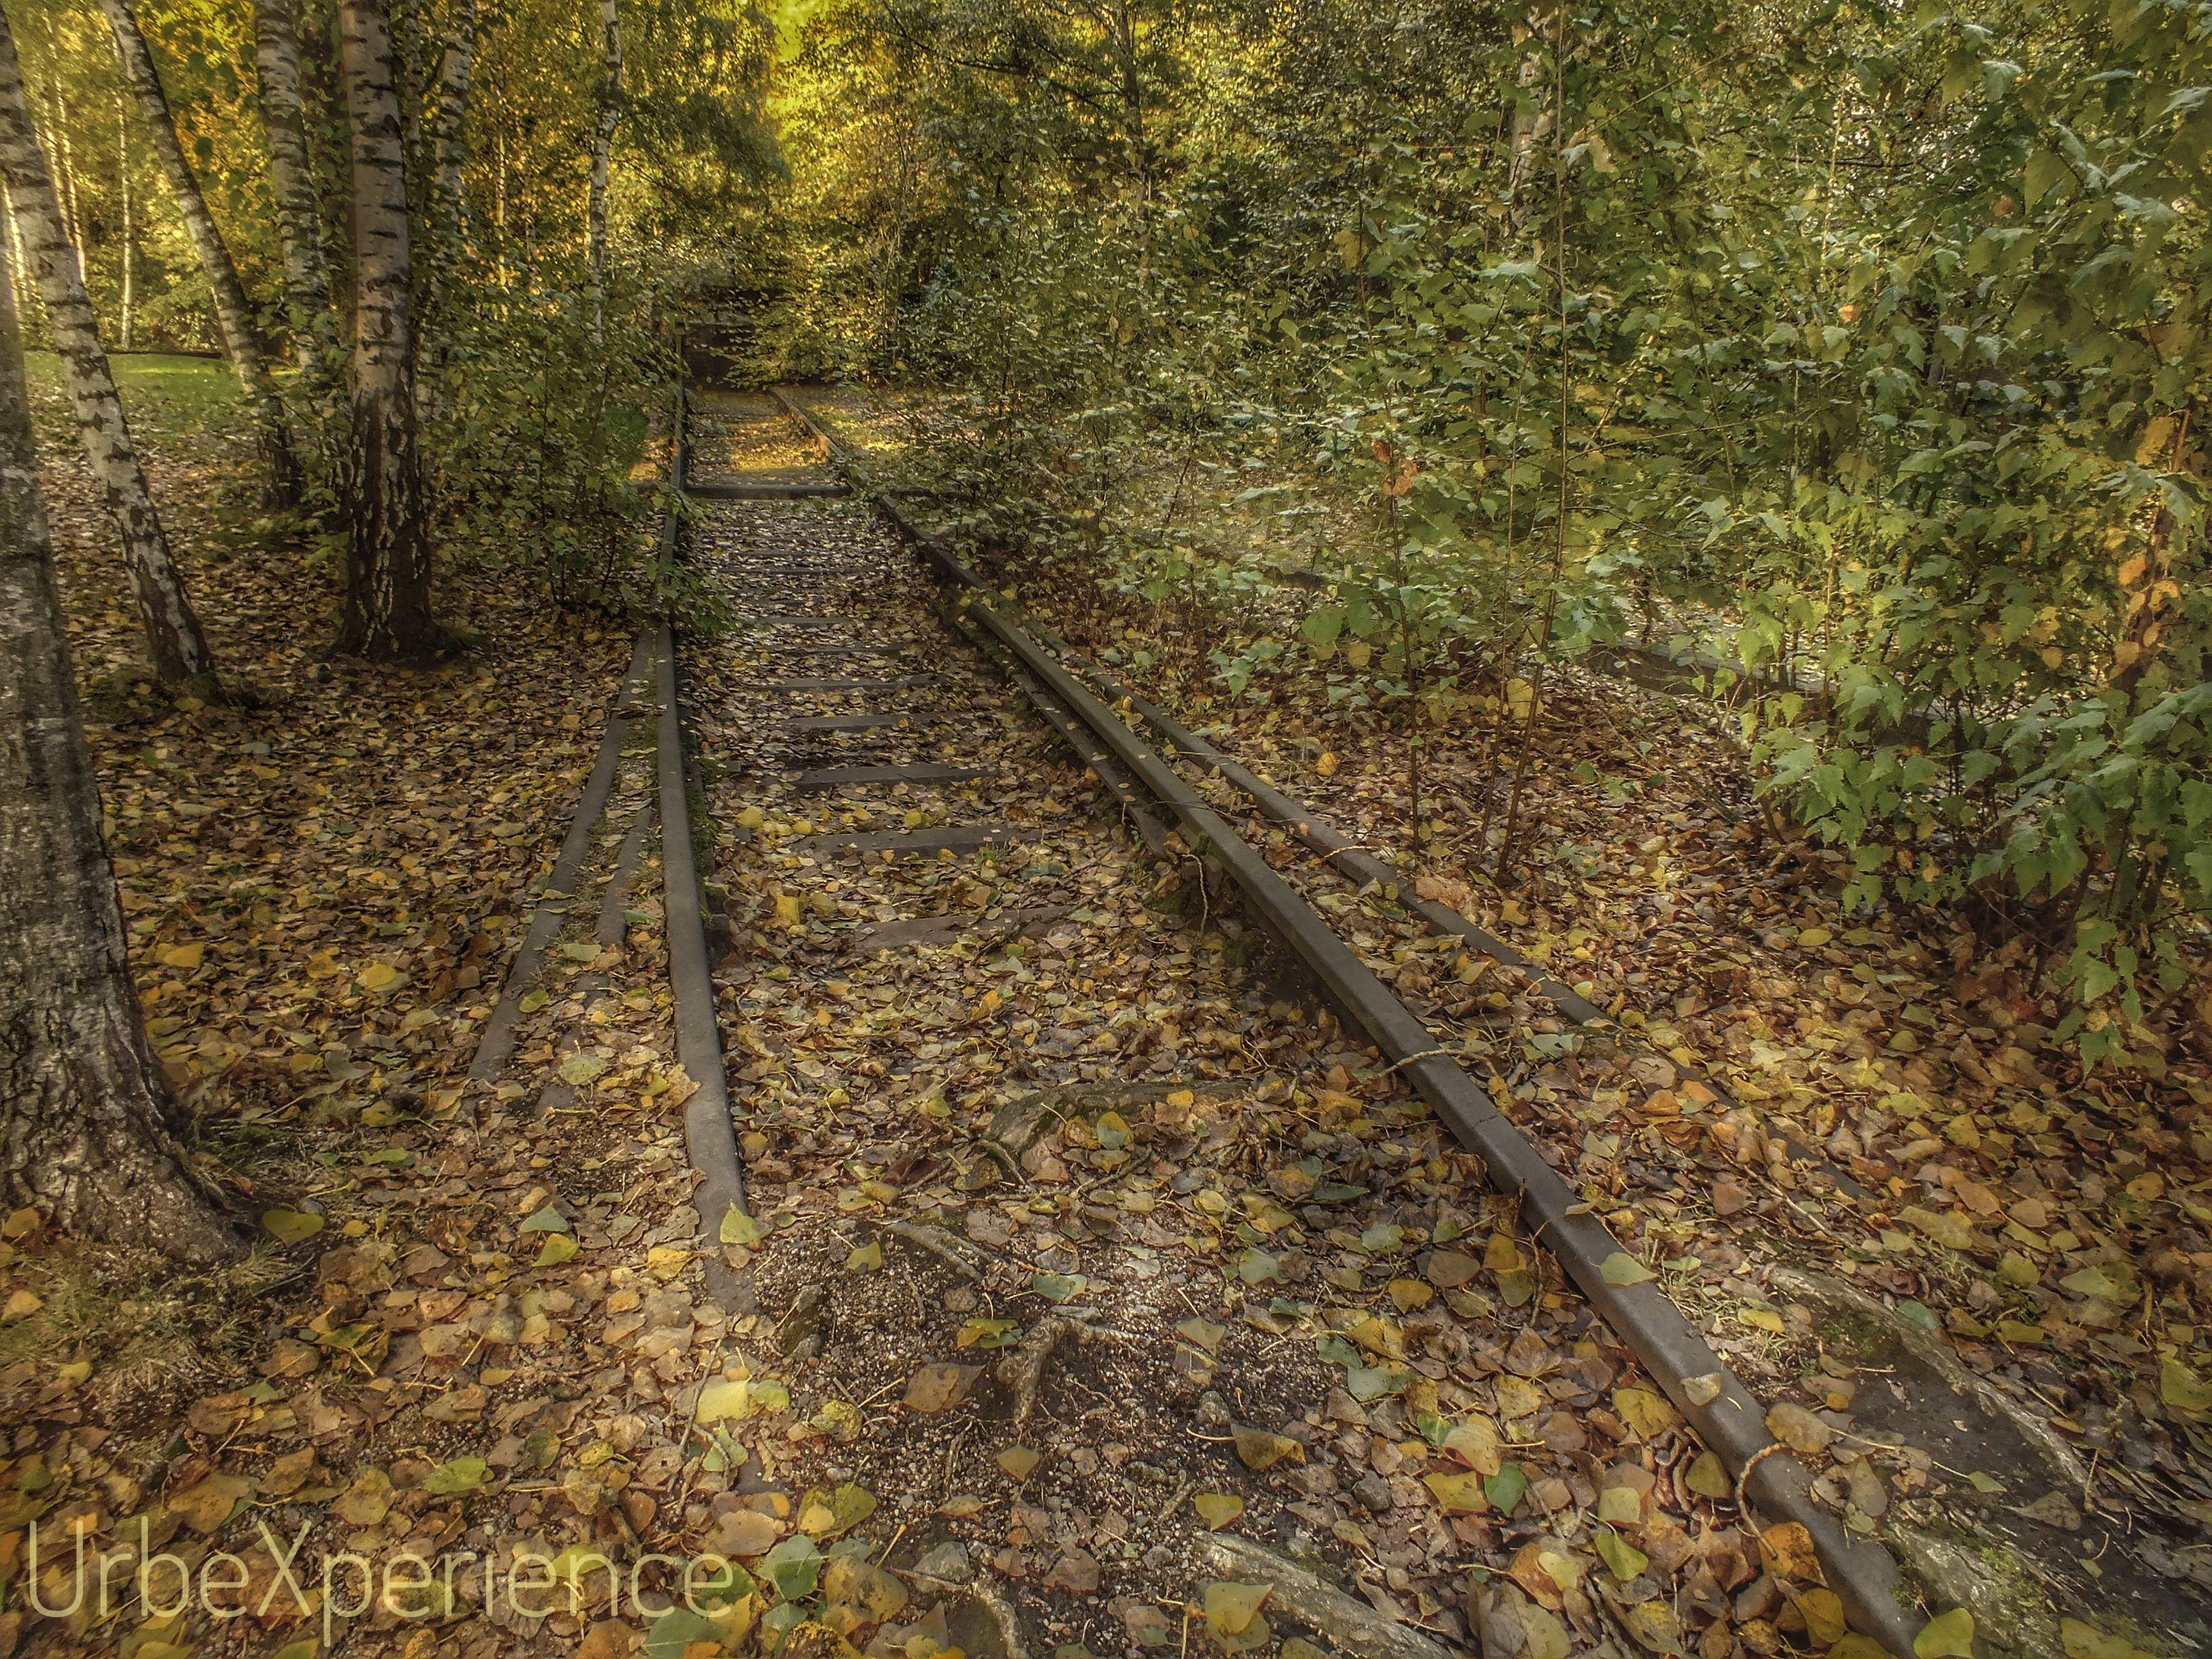 Lost trains & tracks